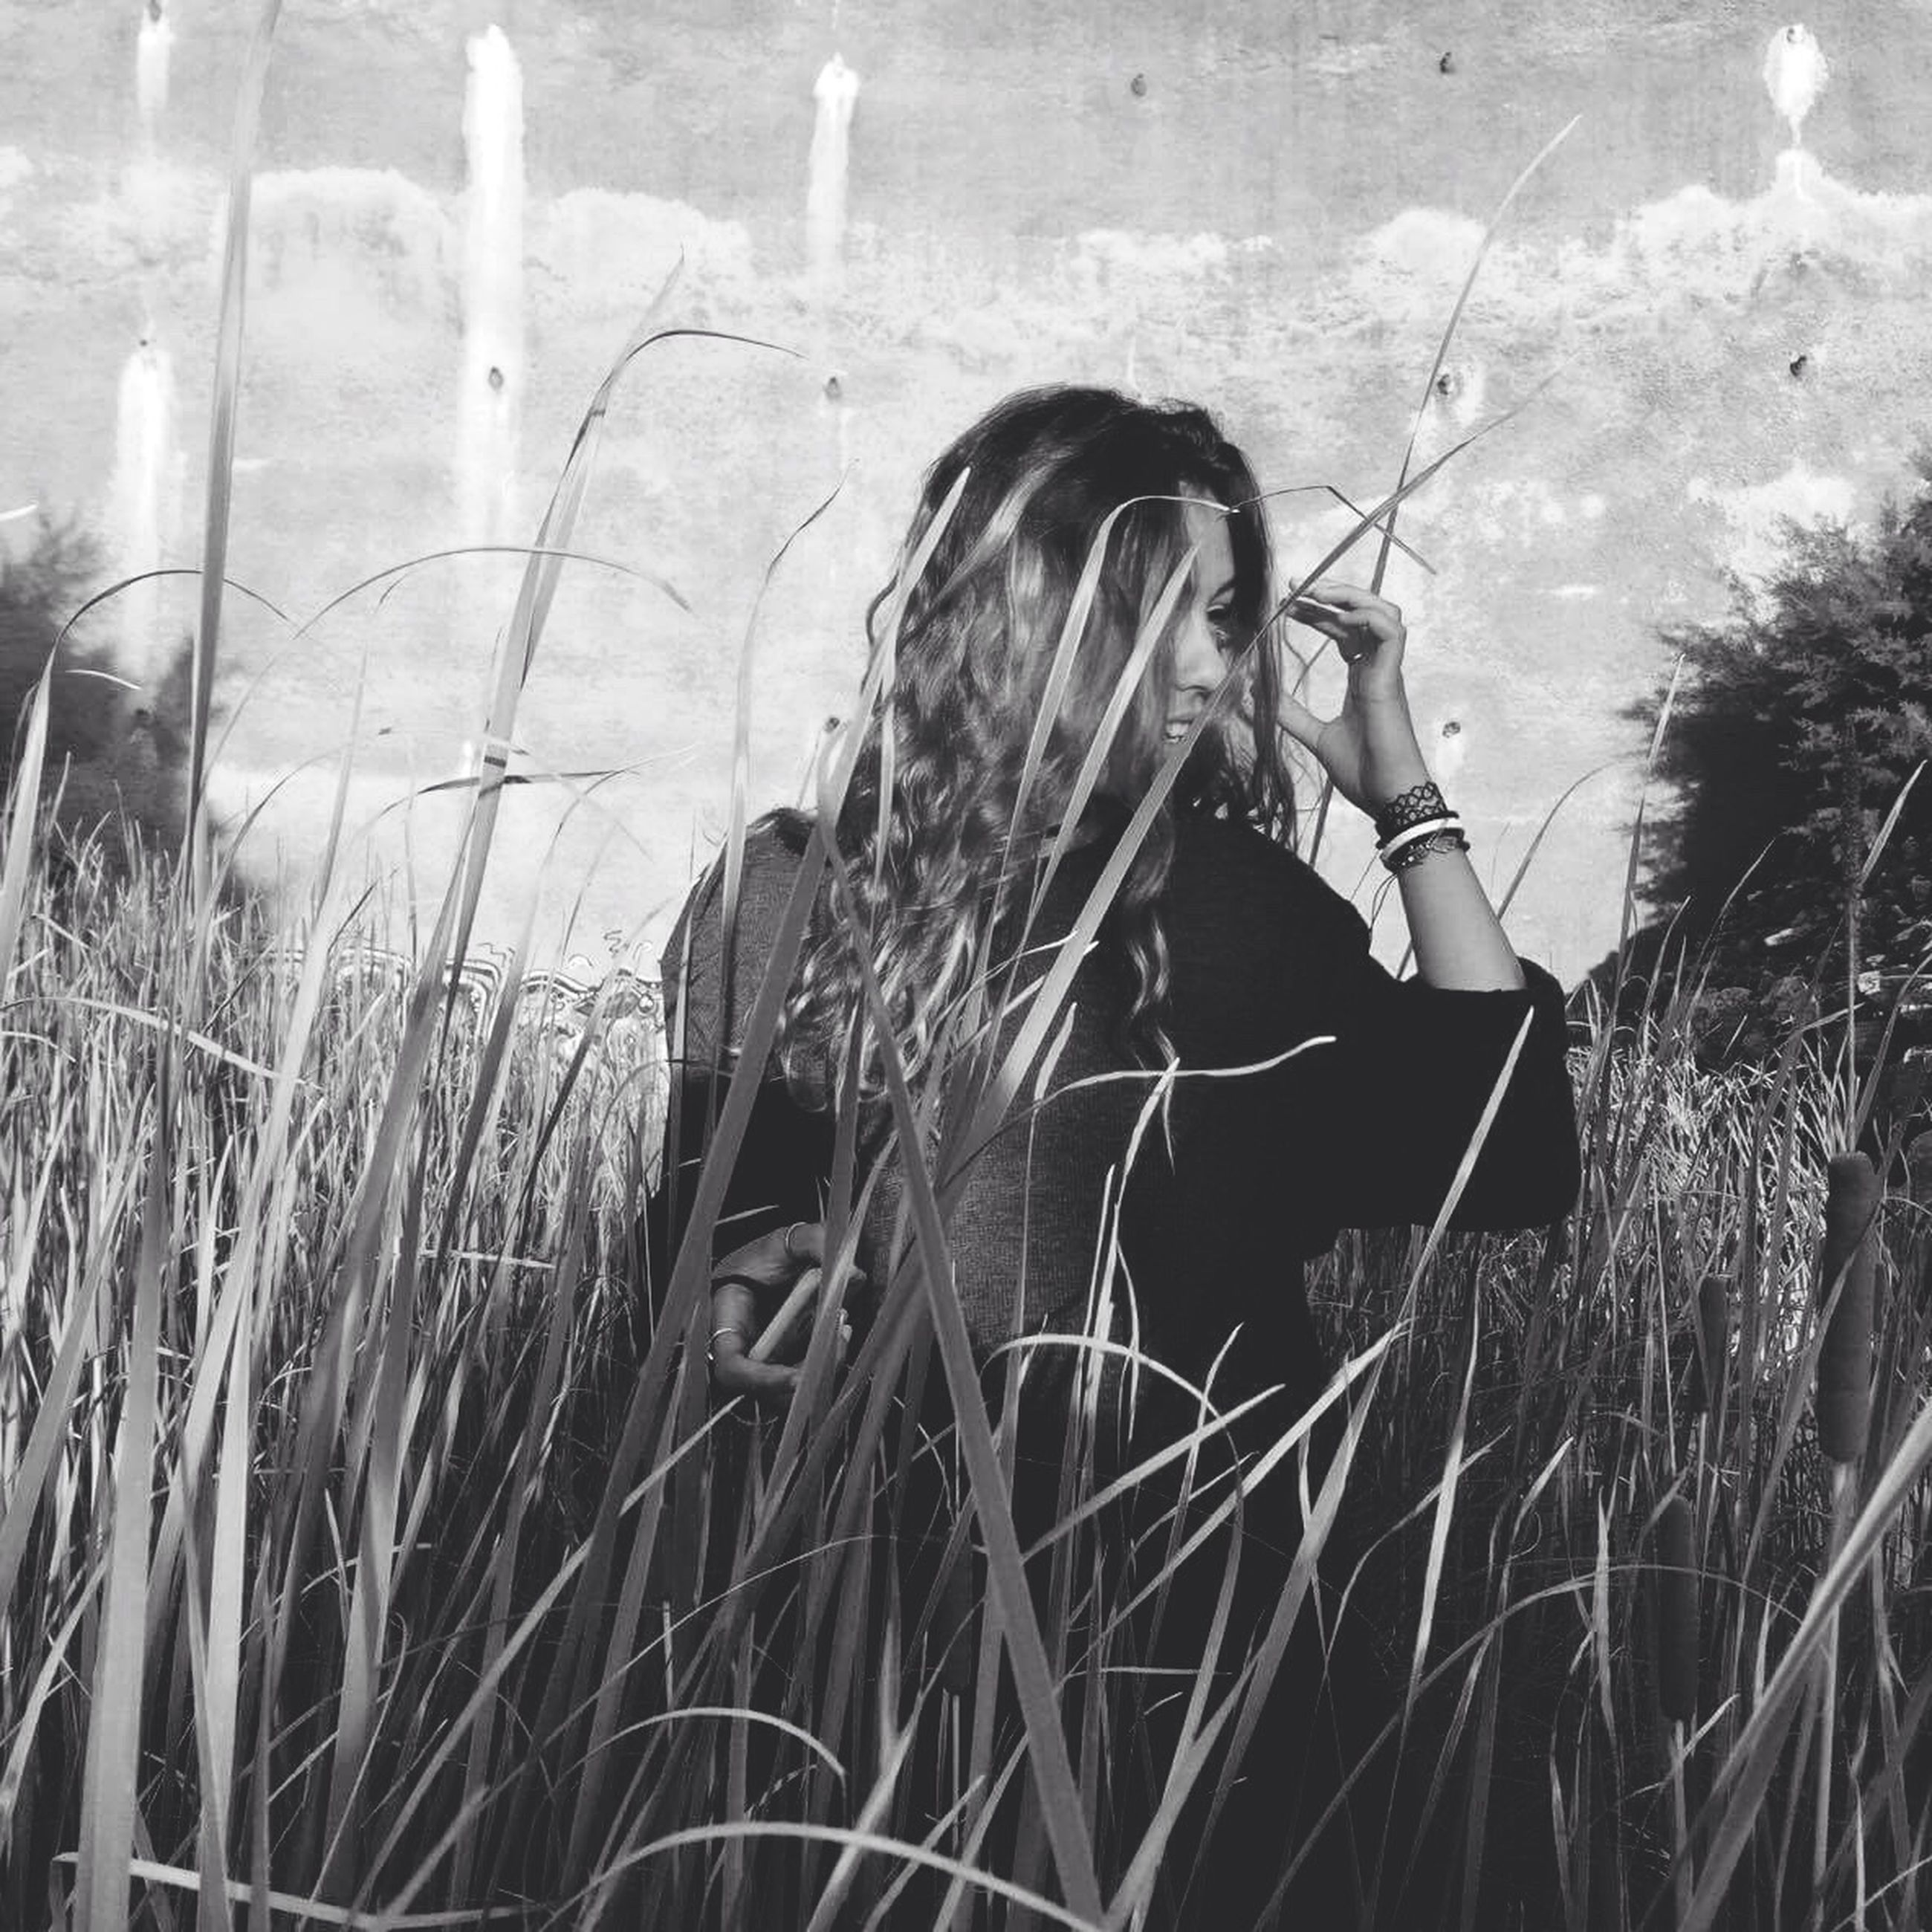 grass, plant, growth, person, field, outdoors, day, wind, in front of